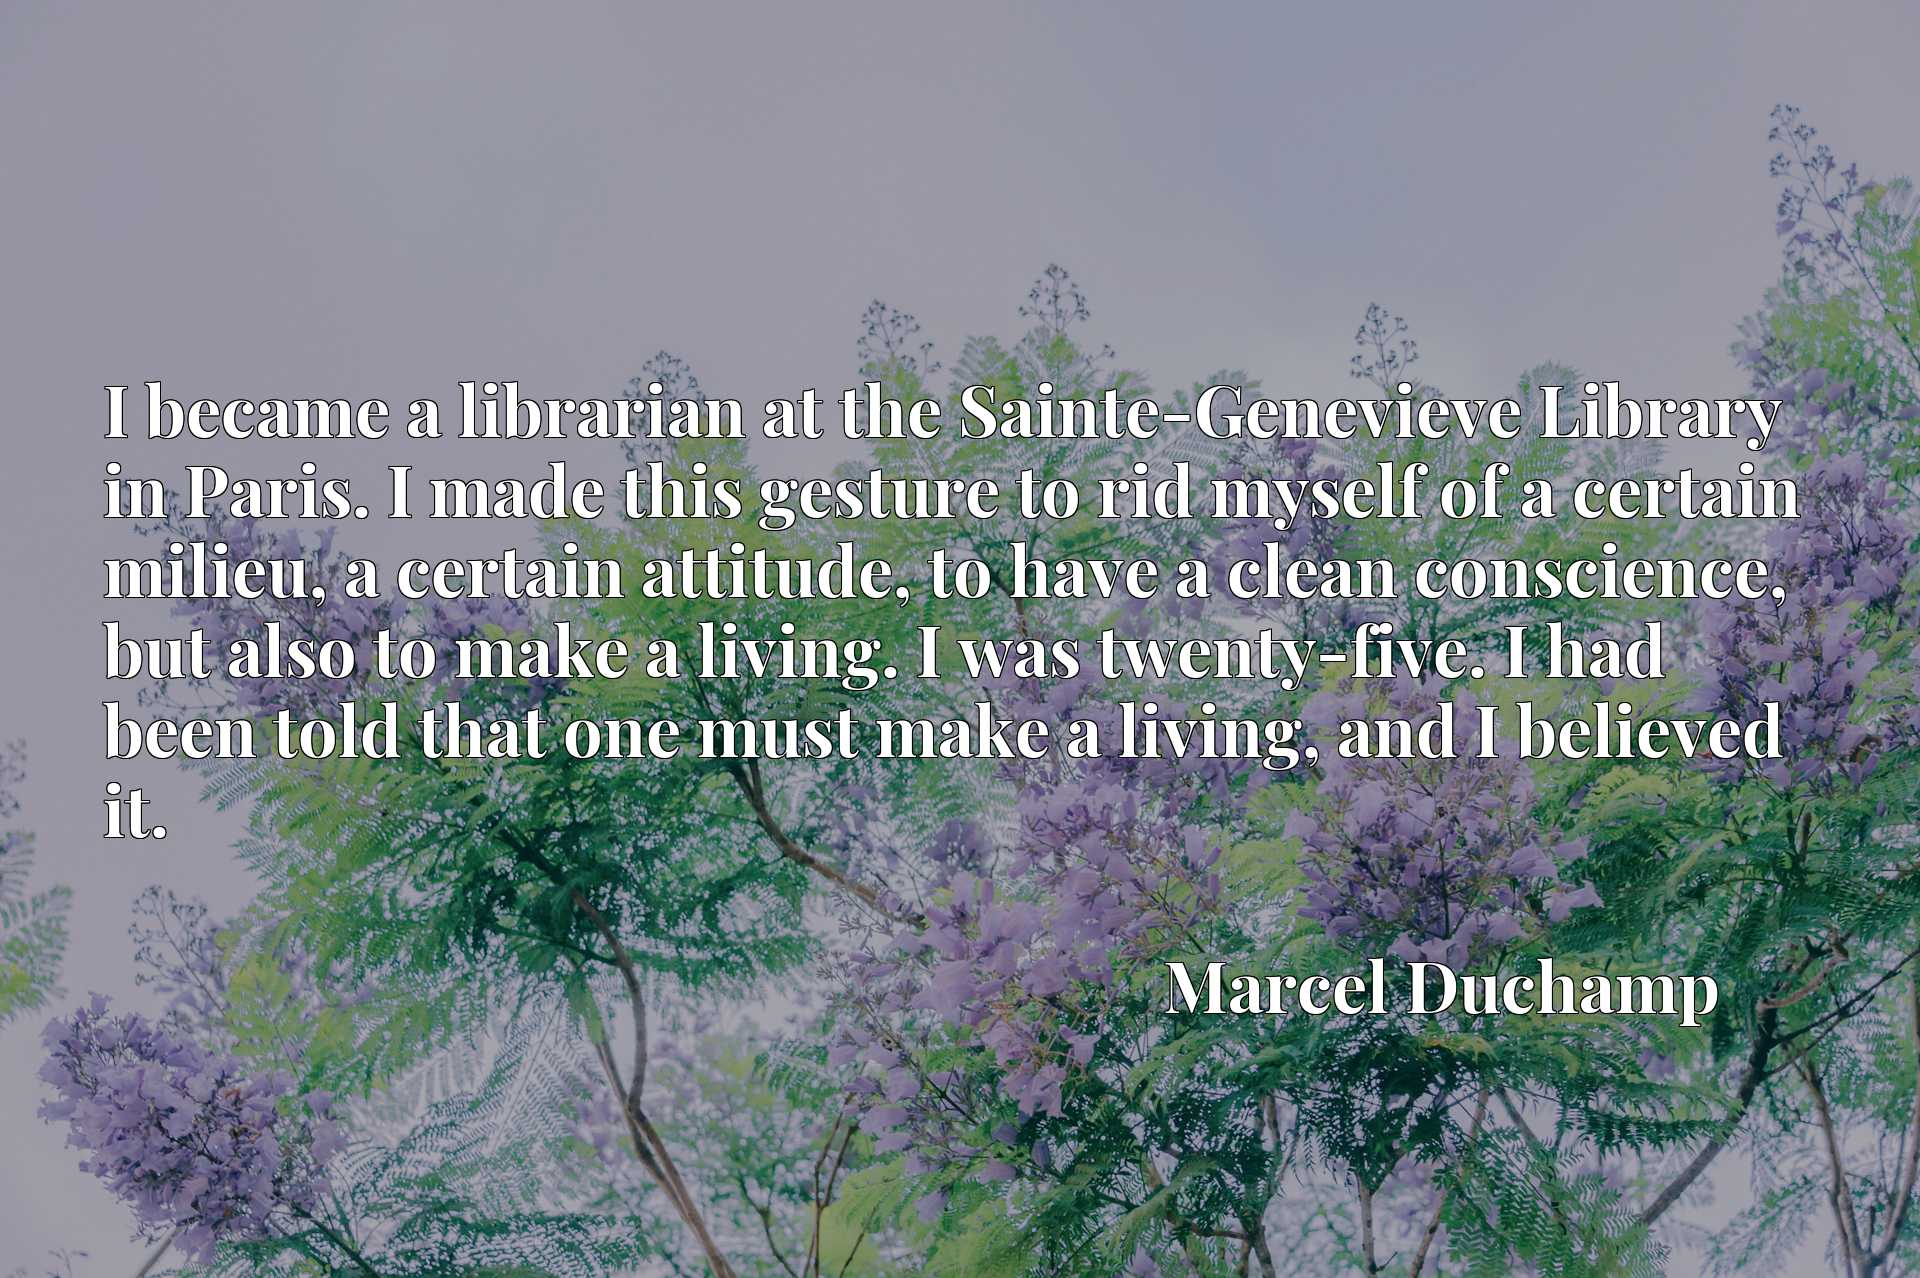 I became a librarian at the Sainte-Genevieve Library in Paris. I made this gesture to rid myself of a certain milieu, a certain attitude, to have a clean conscience, but also to make a living. I was twenty-five. I had been told that one must make a living, and I believed it.